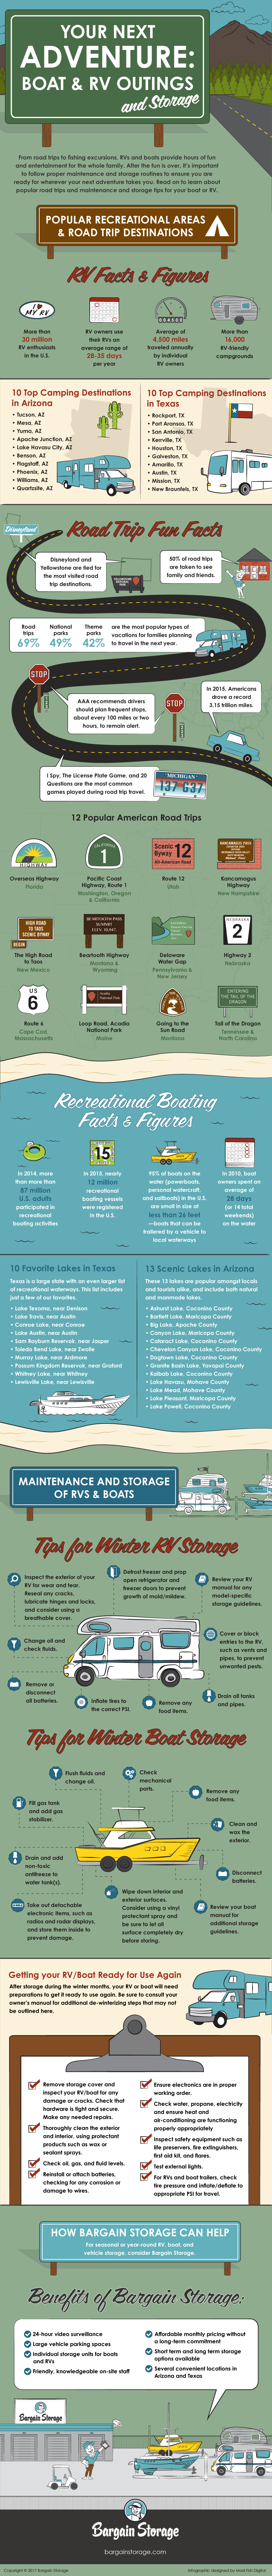 Bargain Storage Boat and RV Storage Infographic